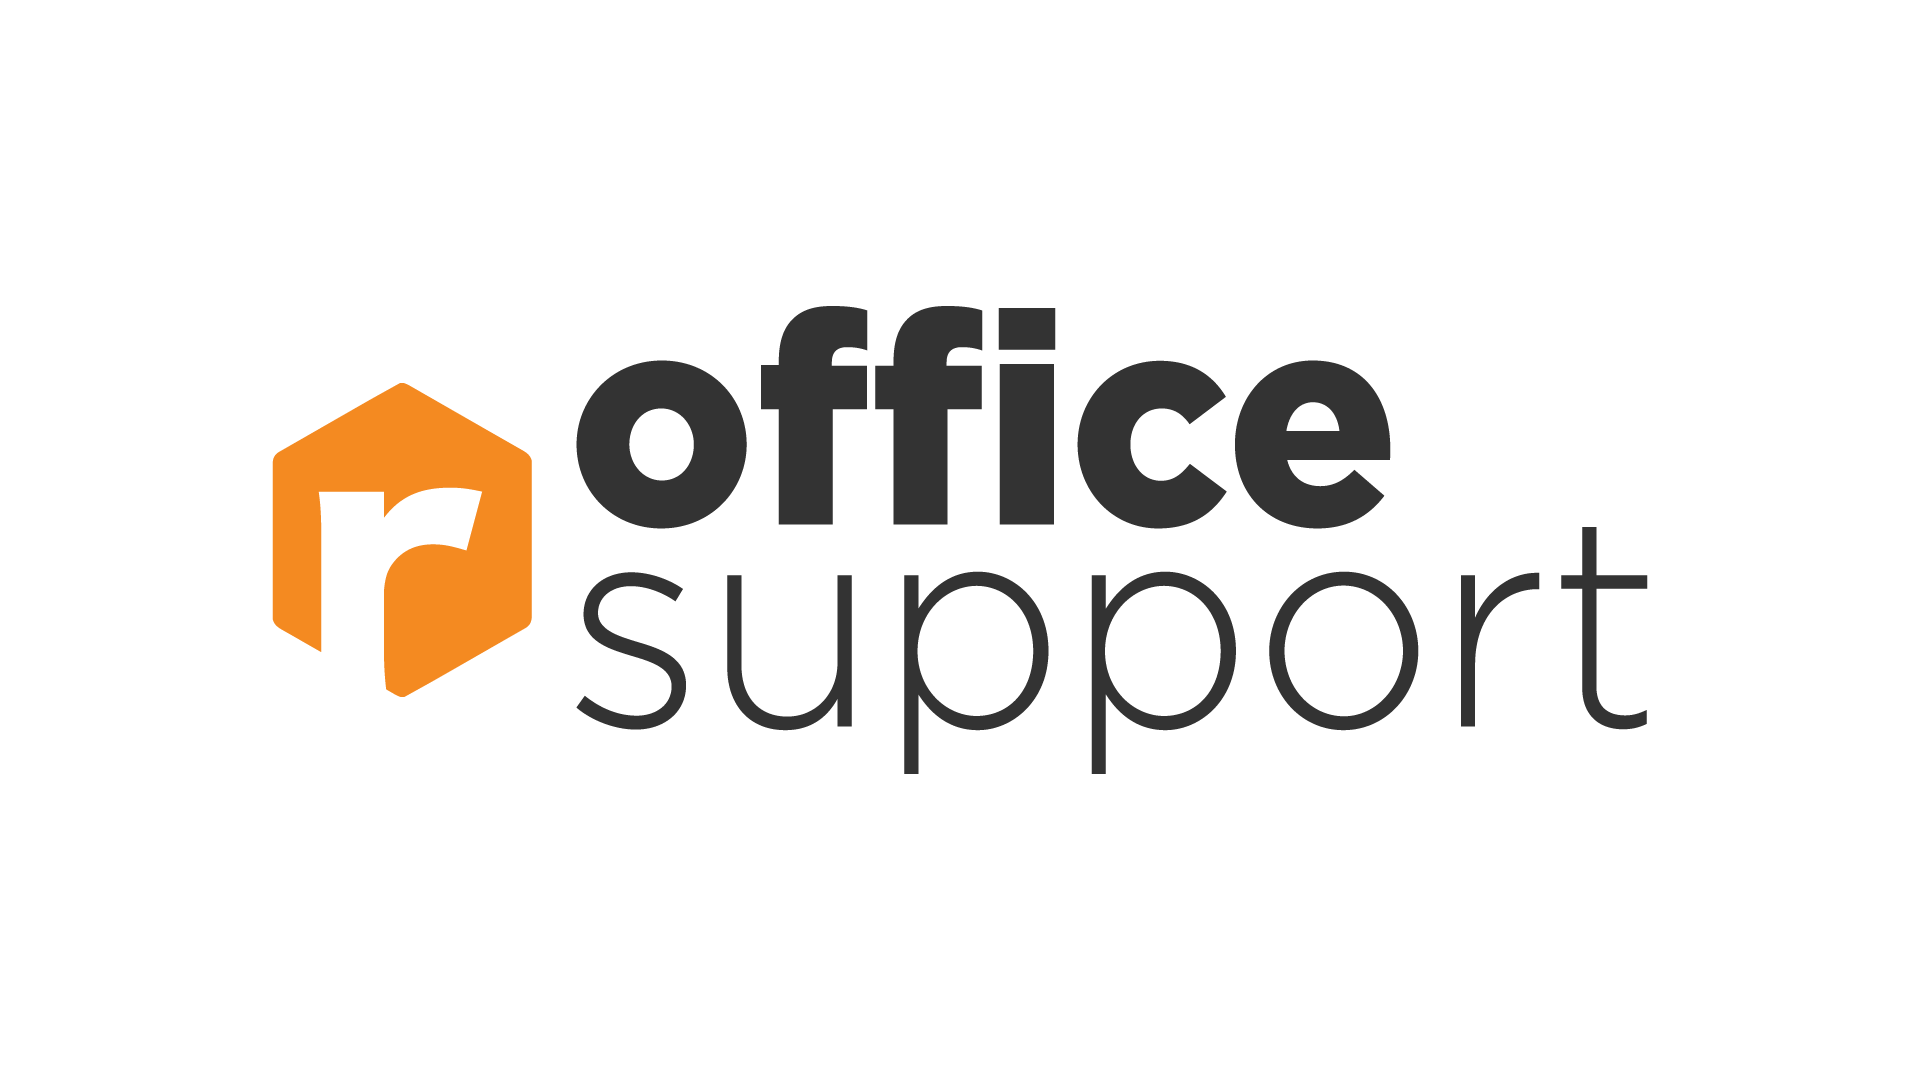 Office Support-WIDE.png